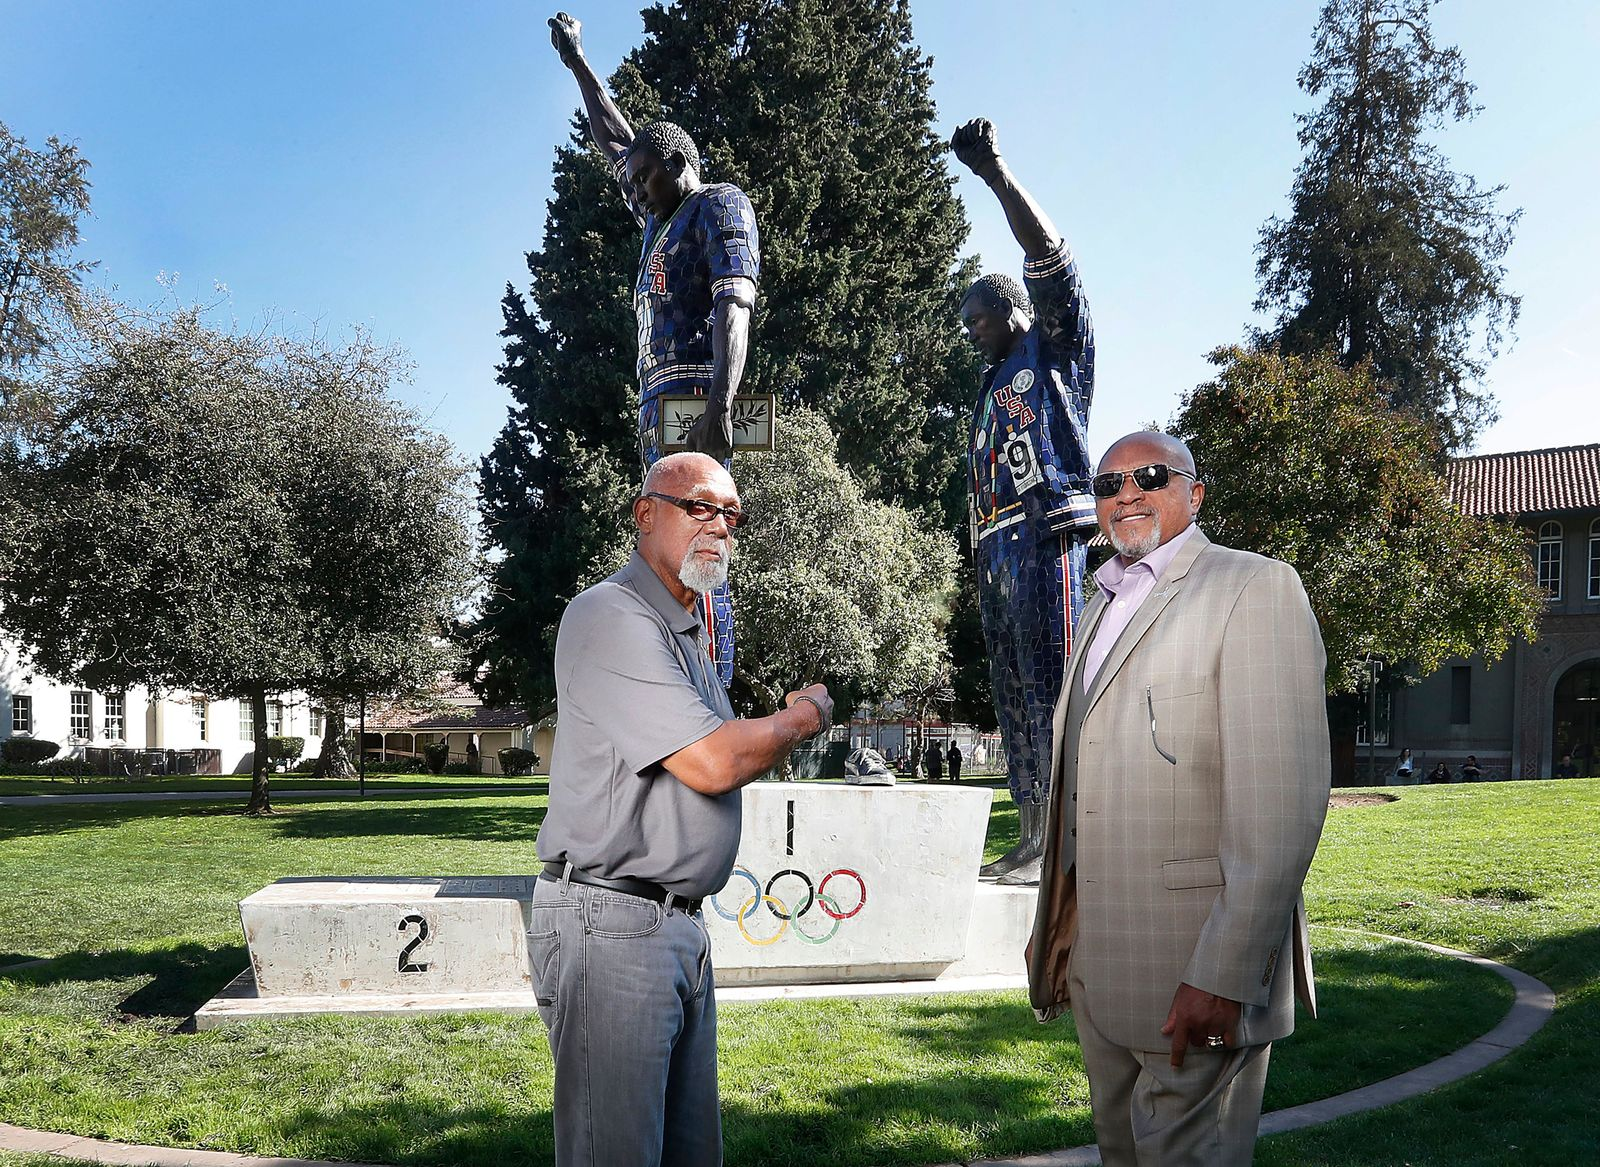 FILE - In this Oct. 17, 2018, file photo, John Carlos, left, and Tommie Smith pose for a photo in front of statue that honors their iconic, black-gloved protest at the 1968 Olympic Games, on the campus of San Jose State University in San Jose, Calif. (AP Photo/Tony Avelar, File)